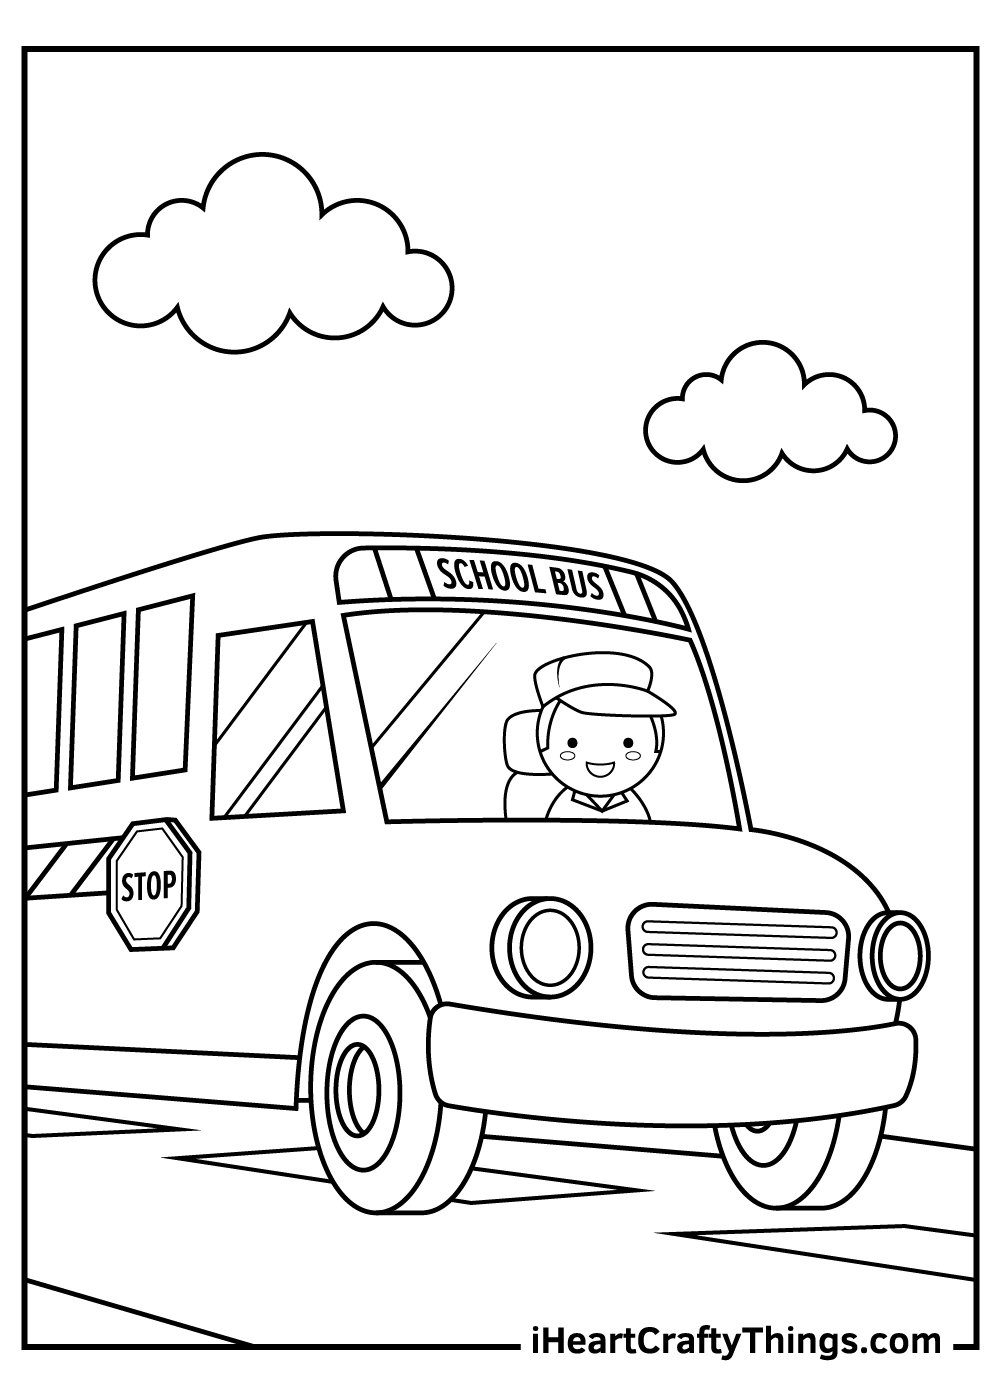 going on school bus coloring pages pdf